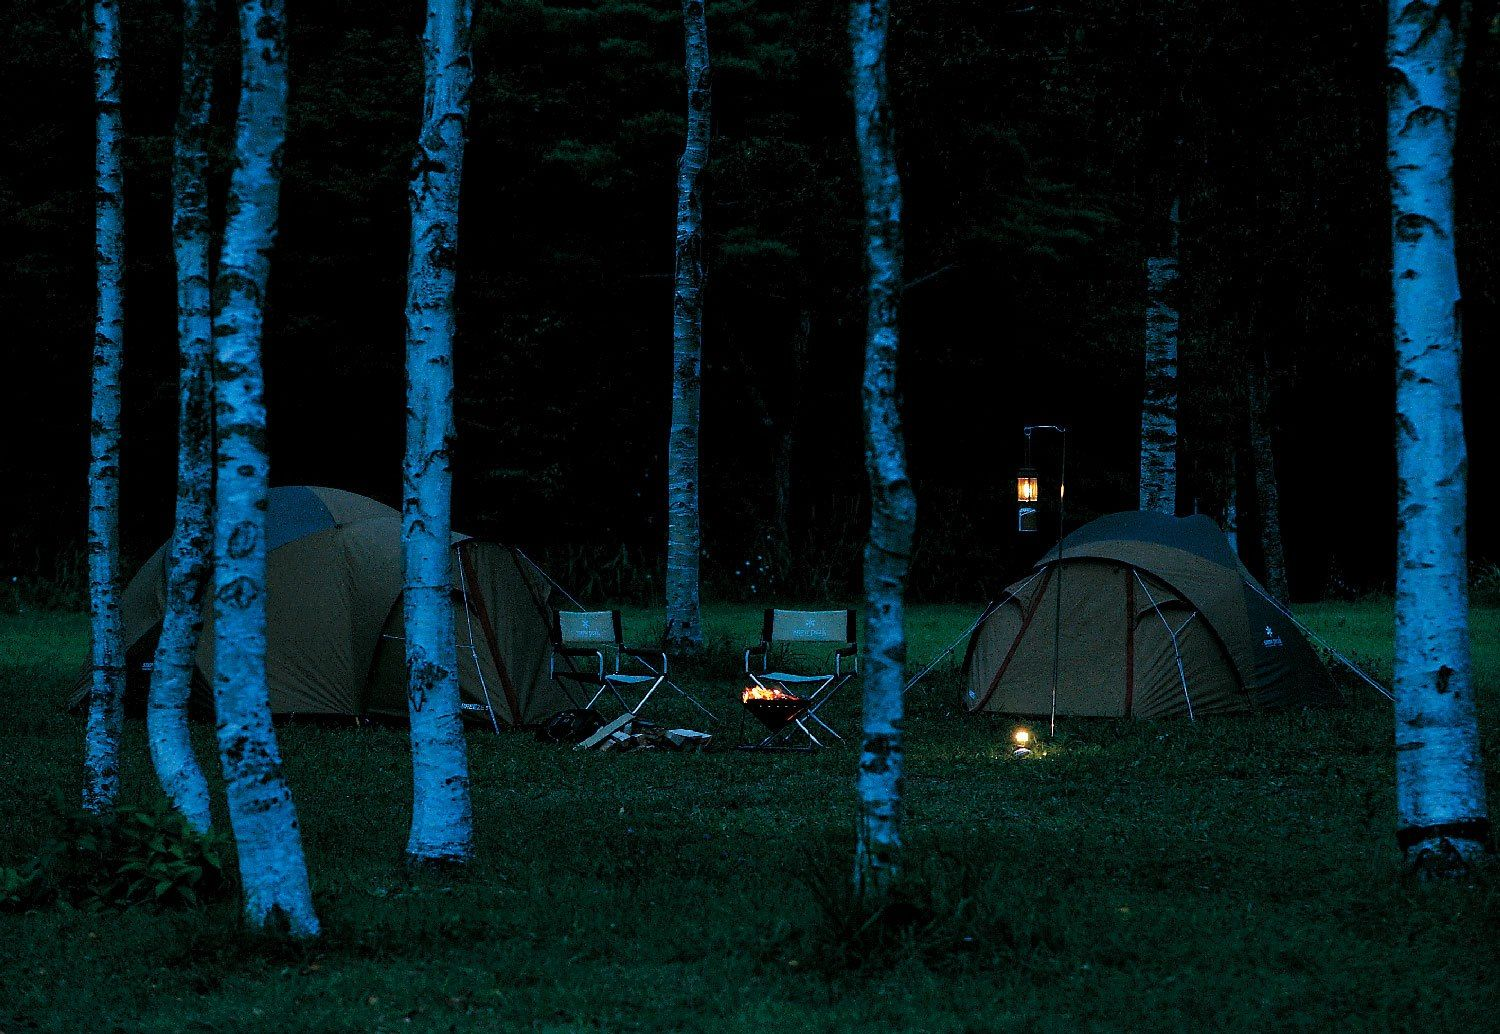 Nightfall of the camping | Outdoor, Snow trails, Outdoor ...